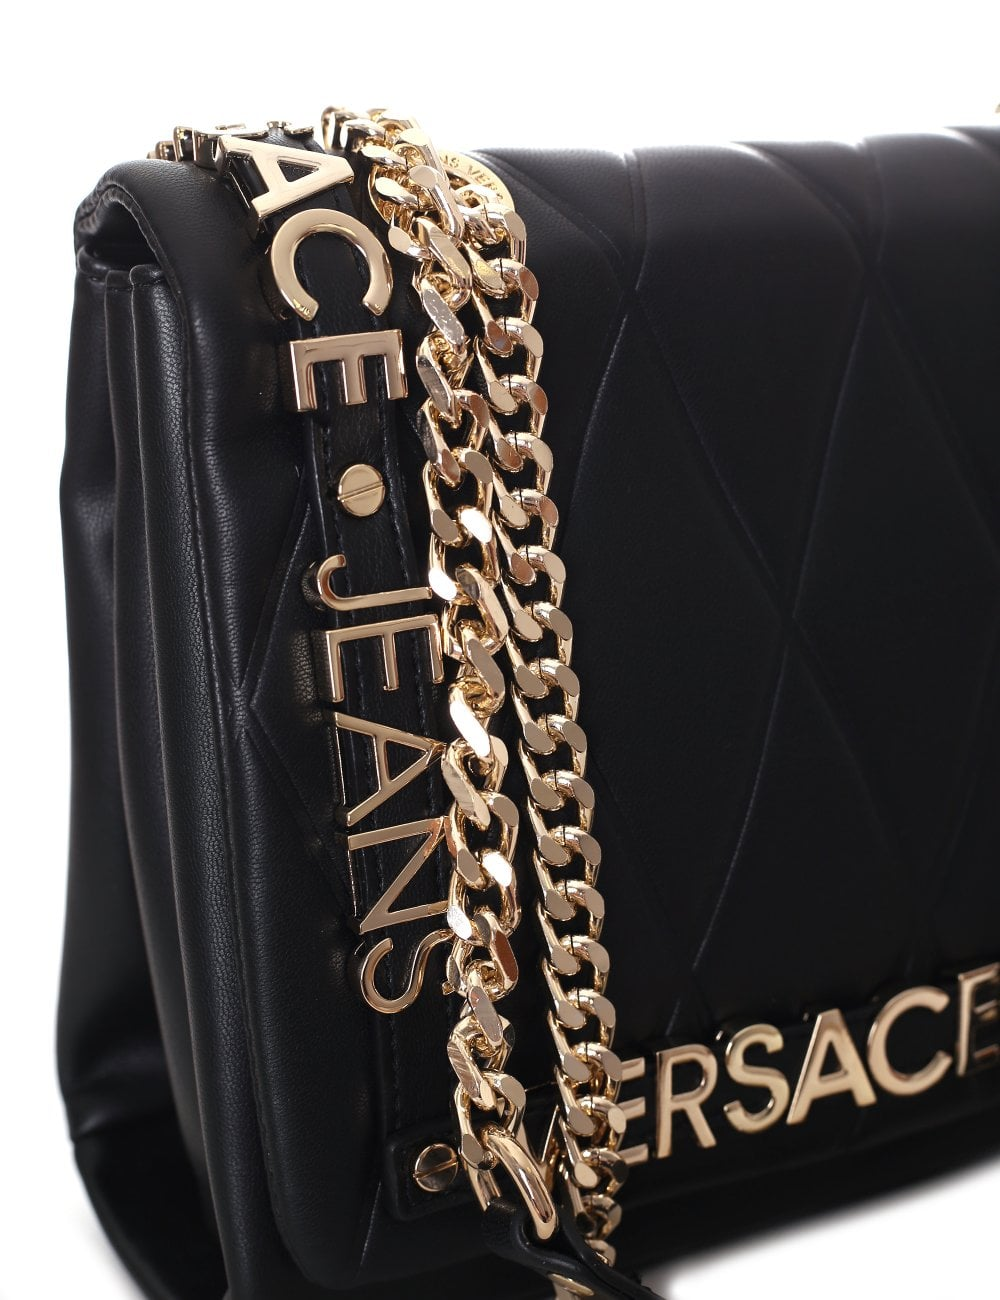 6a0e9dc2028 Versace Jeans Women s Quilted Chain Shoulder bag